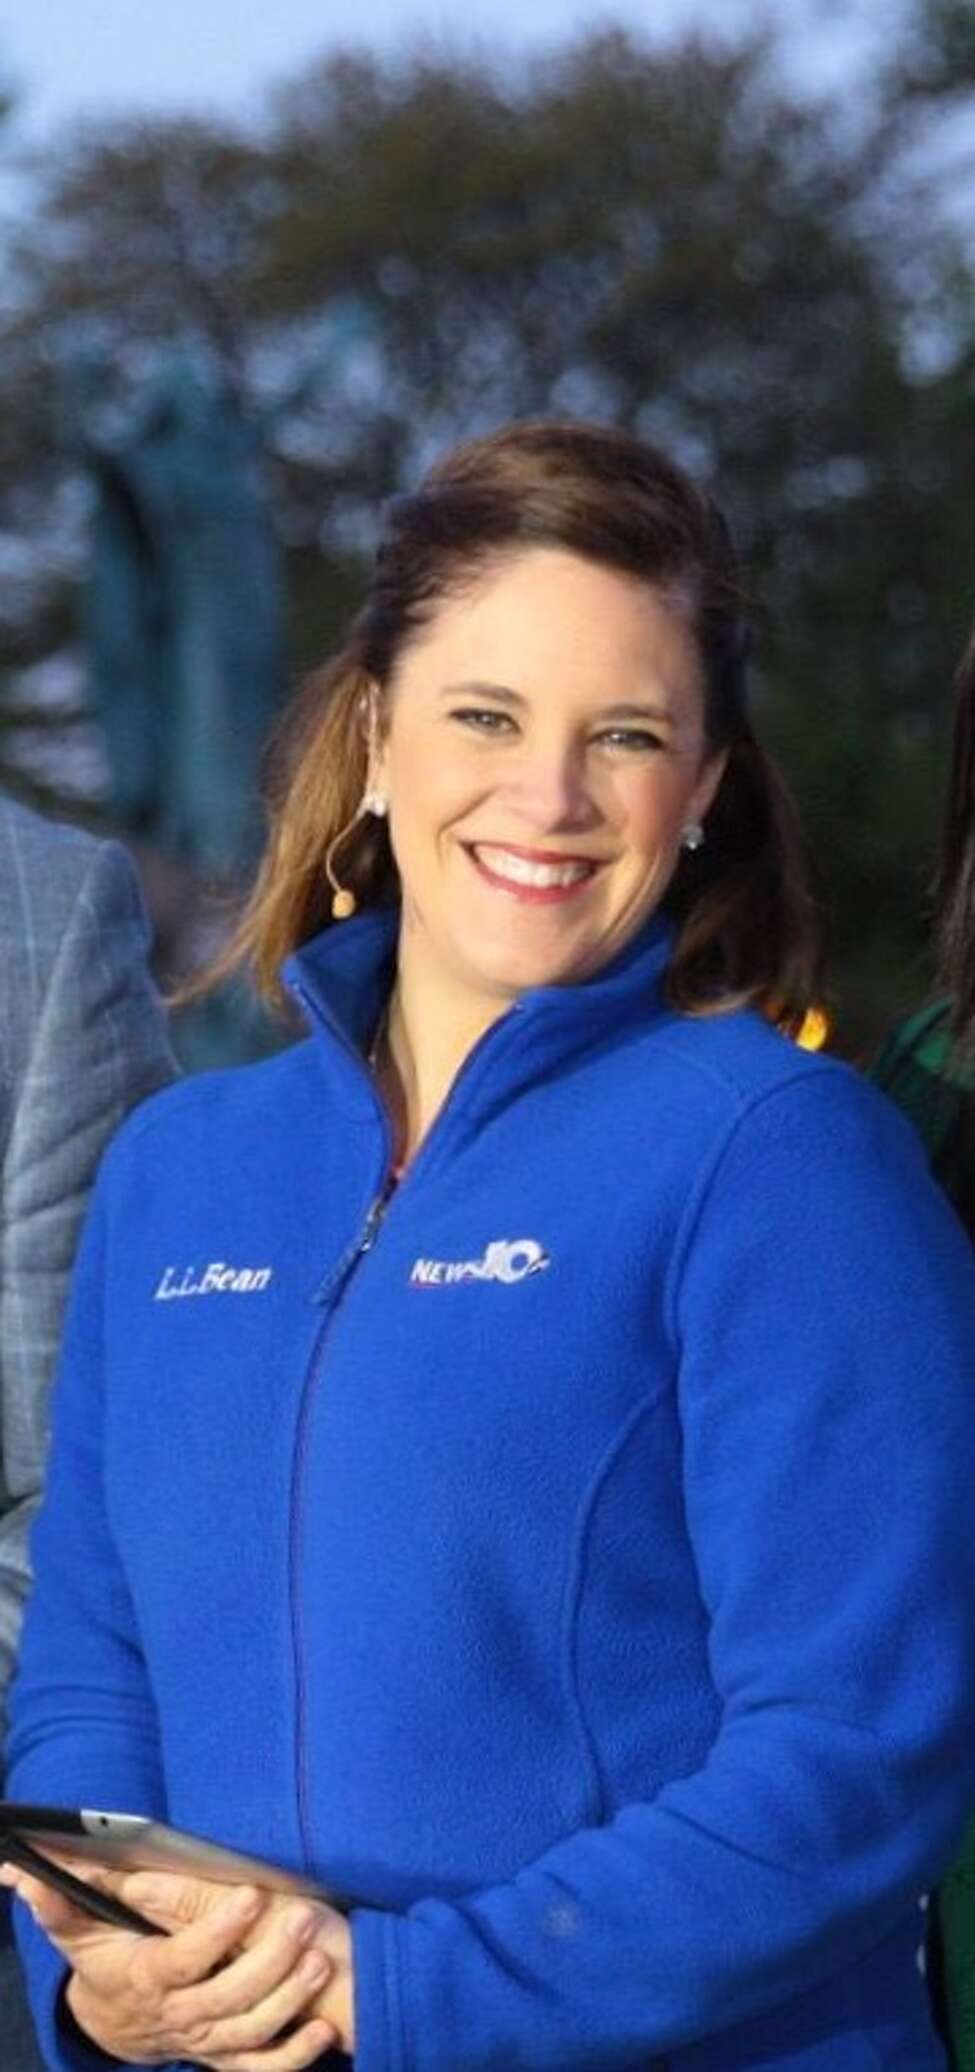 Click through the slideshow for 20 things you don't know about Nicol Lally from WTEN.